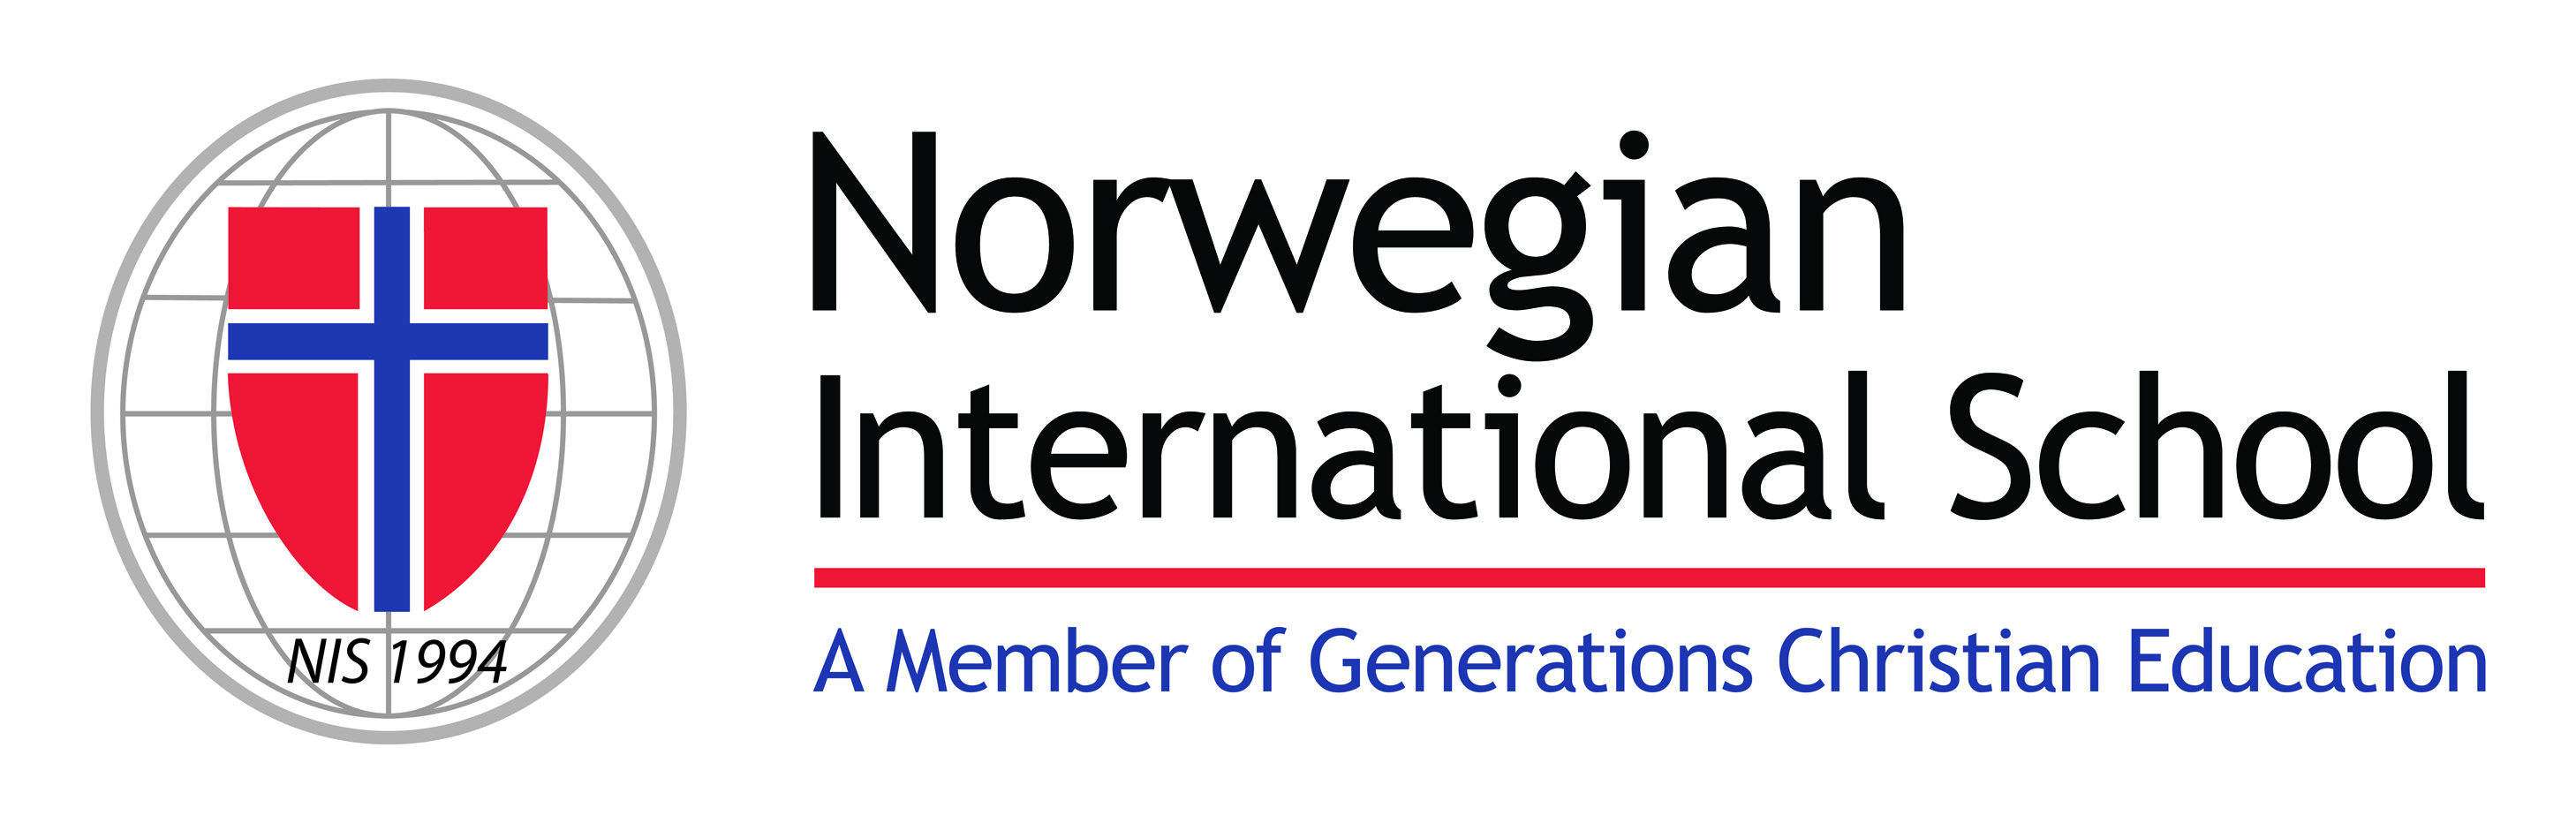 Norwegian International School